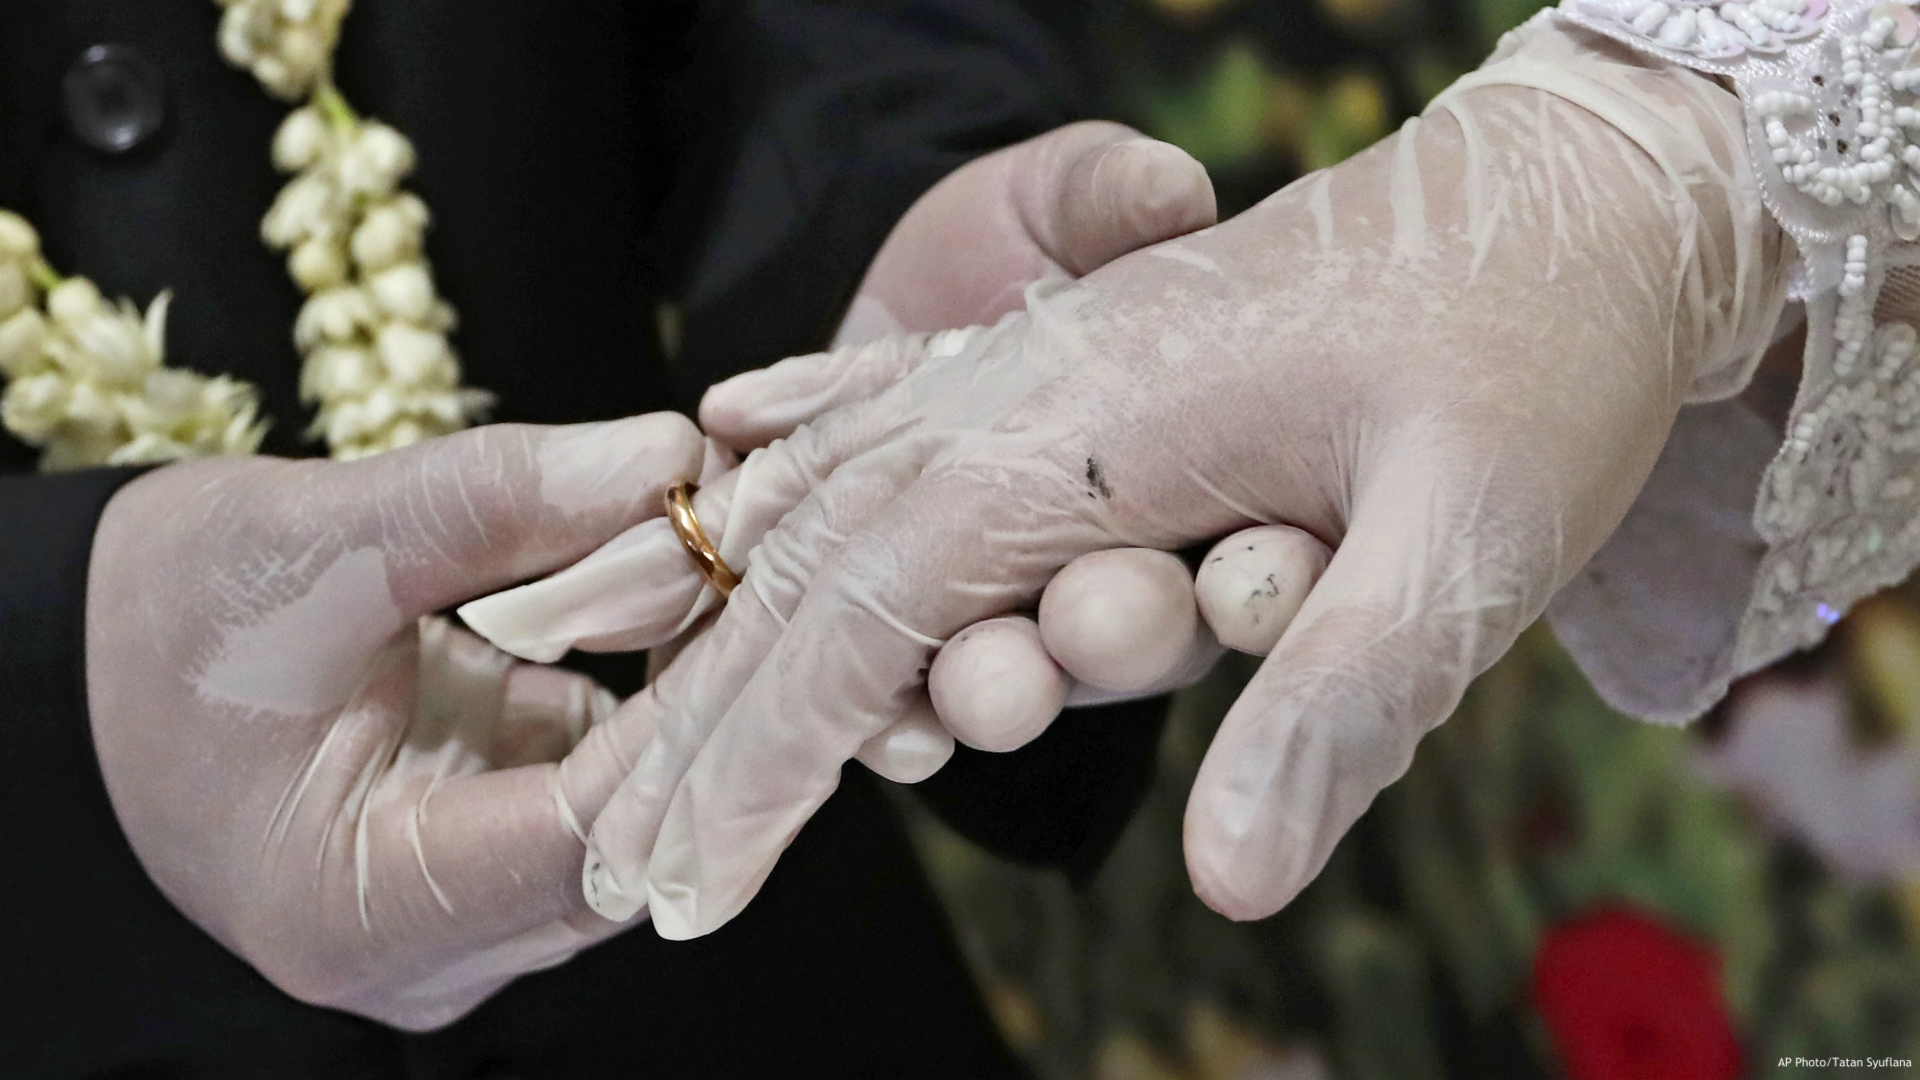 Wearing latex gloves to prevent the spread of the coronavirus, a bride and groom exchange rings during their wedding ceremony at the local Religious Affairs Office in Pamulang, on the outskirts of Jakarta, Indonesia, on June 19, 2020. Now that weddings have slowly cranked up under a patchwork of ever-shifting restrictions, horror stories from vendors are rolling in. Many are desperate to work after the coronavirus put an abrupt end to their incomes and feel compelled to put on their masks, grab their cameras and hope for the best. (AP Photo/Tatan Syuflana, File)